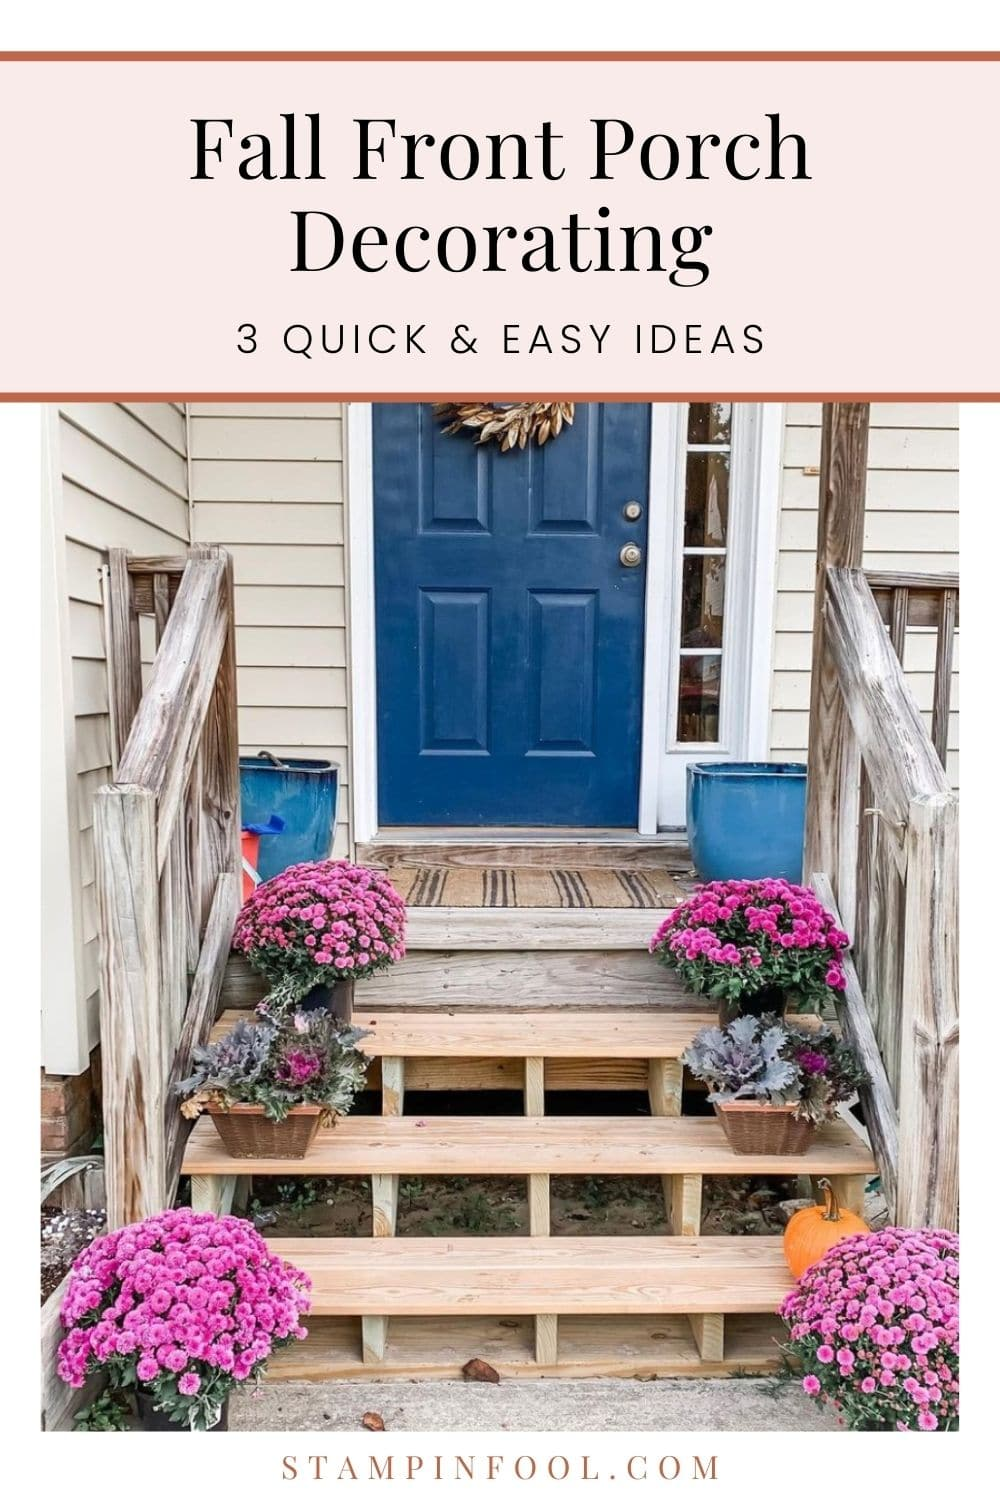 3 Quick and Easy Fall Front Porch Decorating Tips for 2021